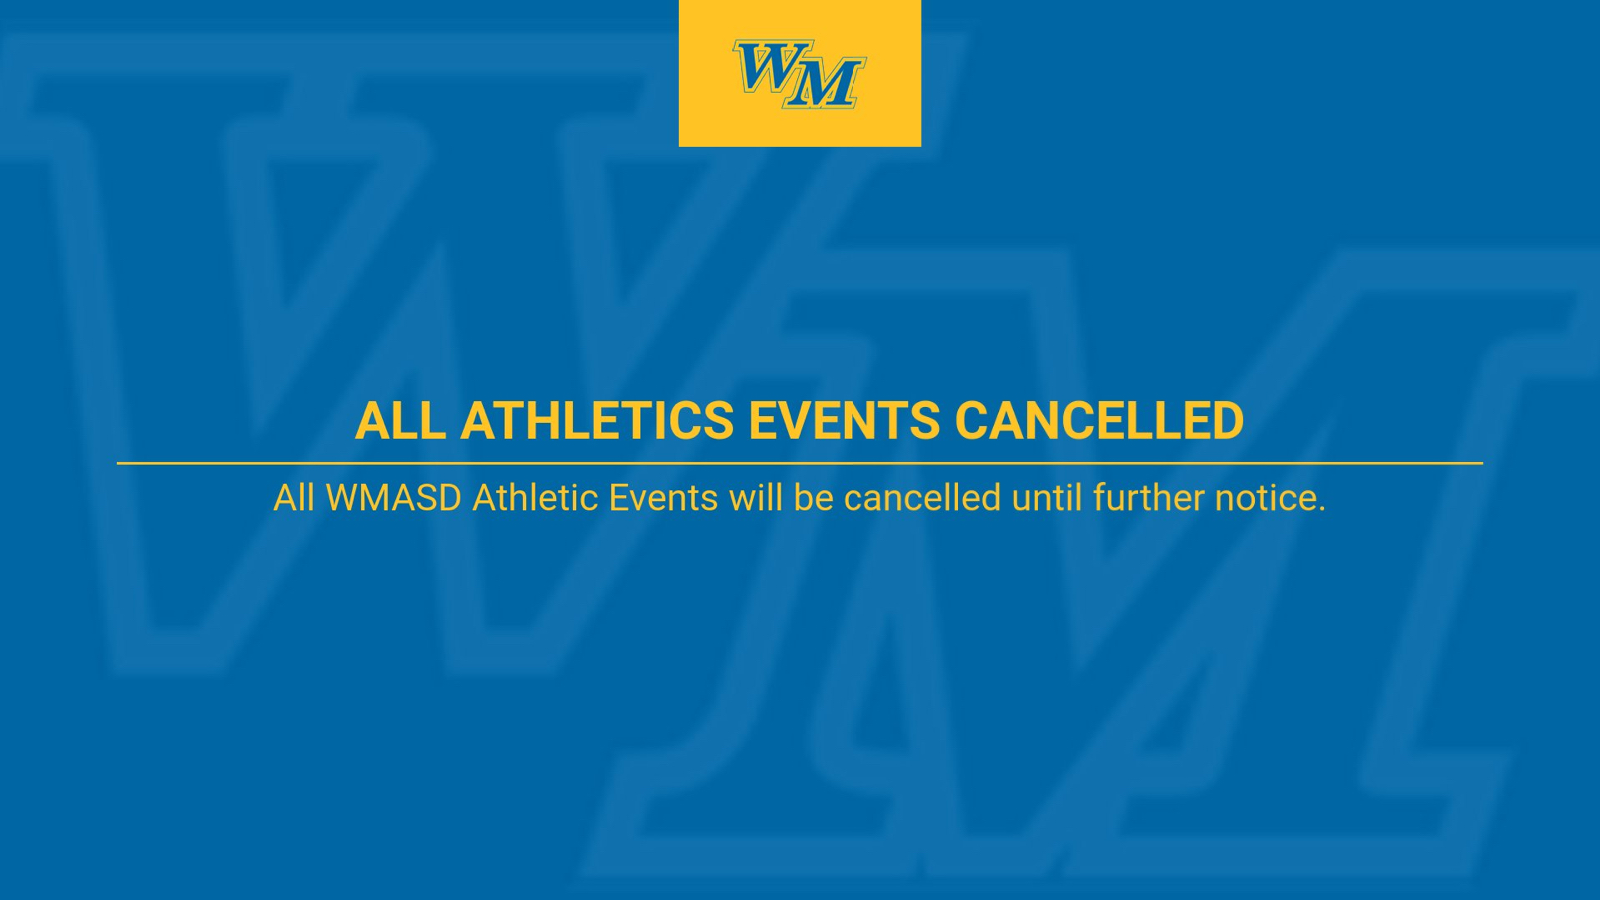 ATHLETIC EVENTS POSTPONED